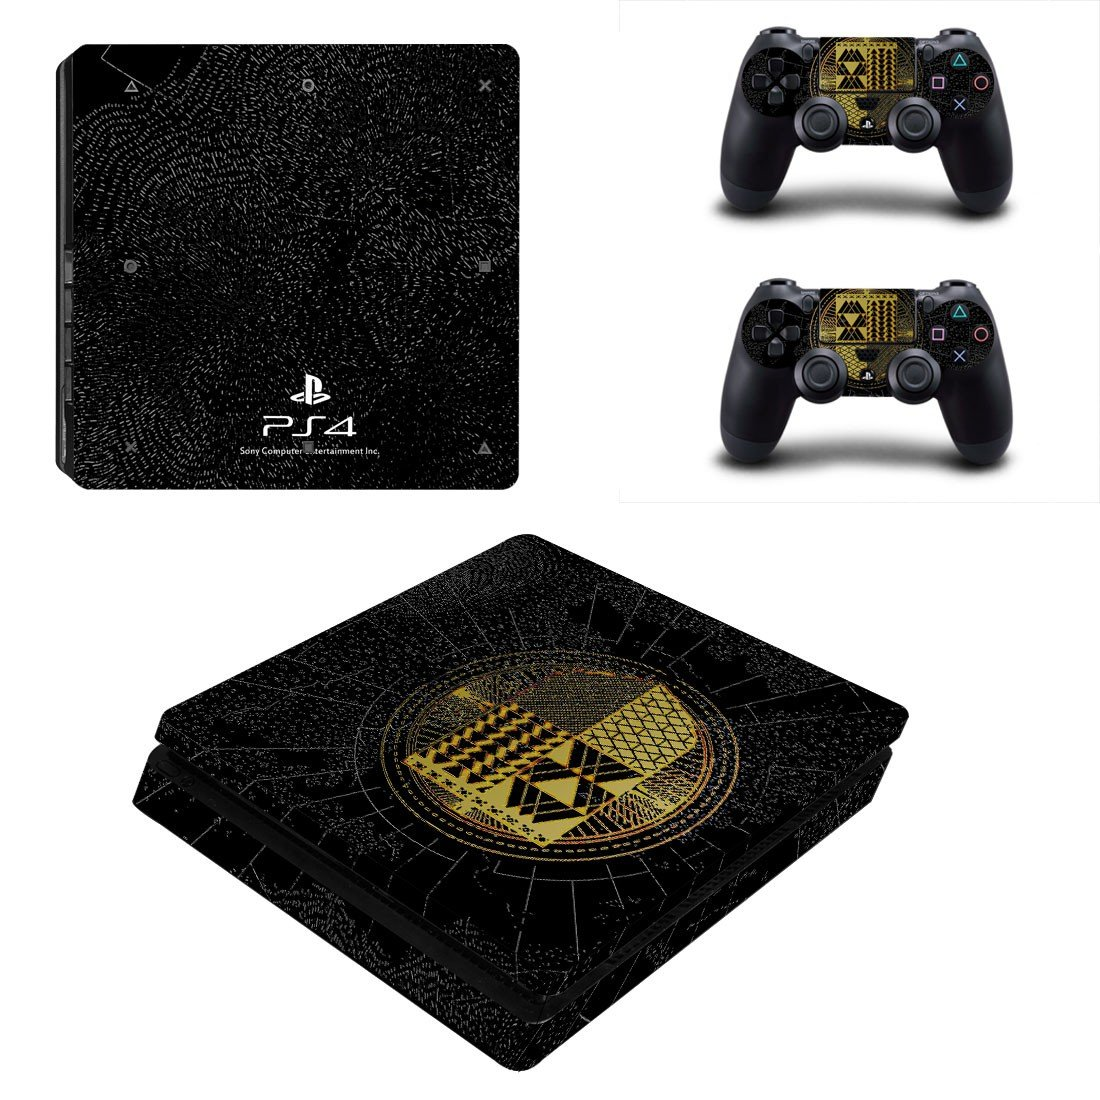 Animated Square pattern Play Station 4 slim skin decal for console and 2 controllers